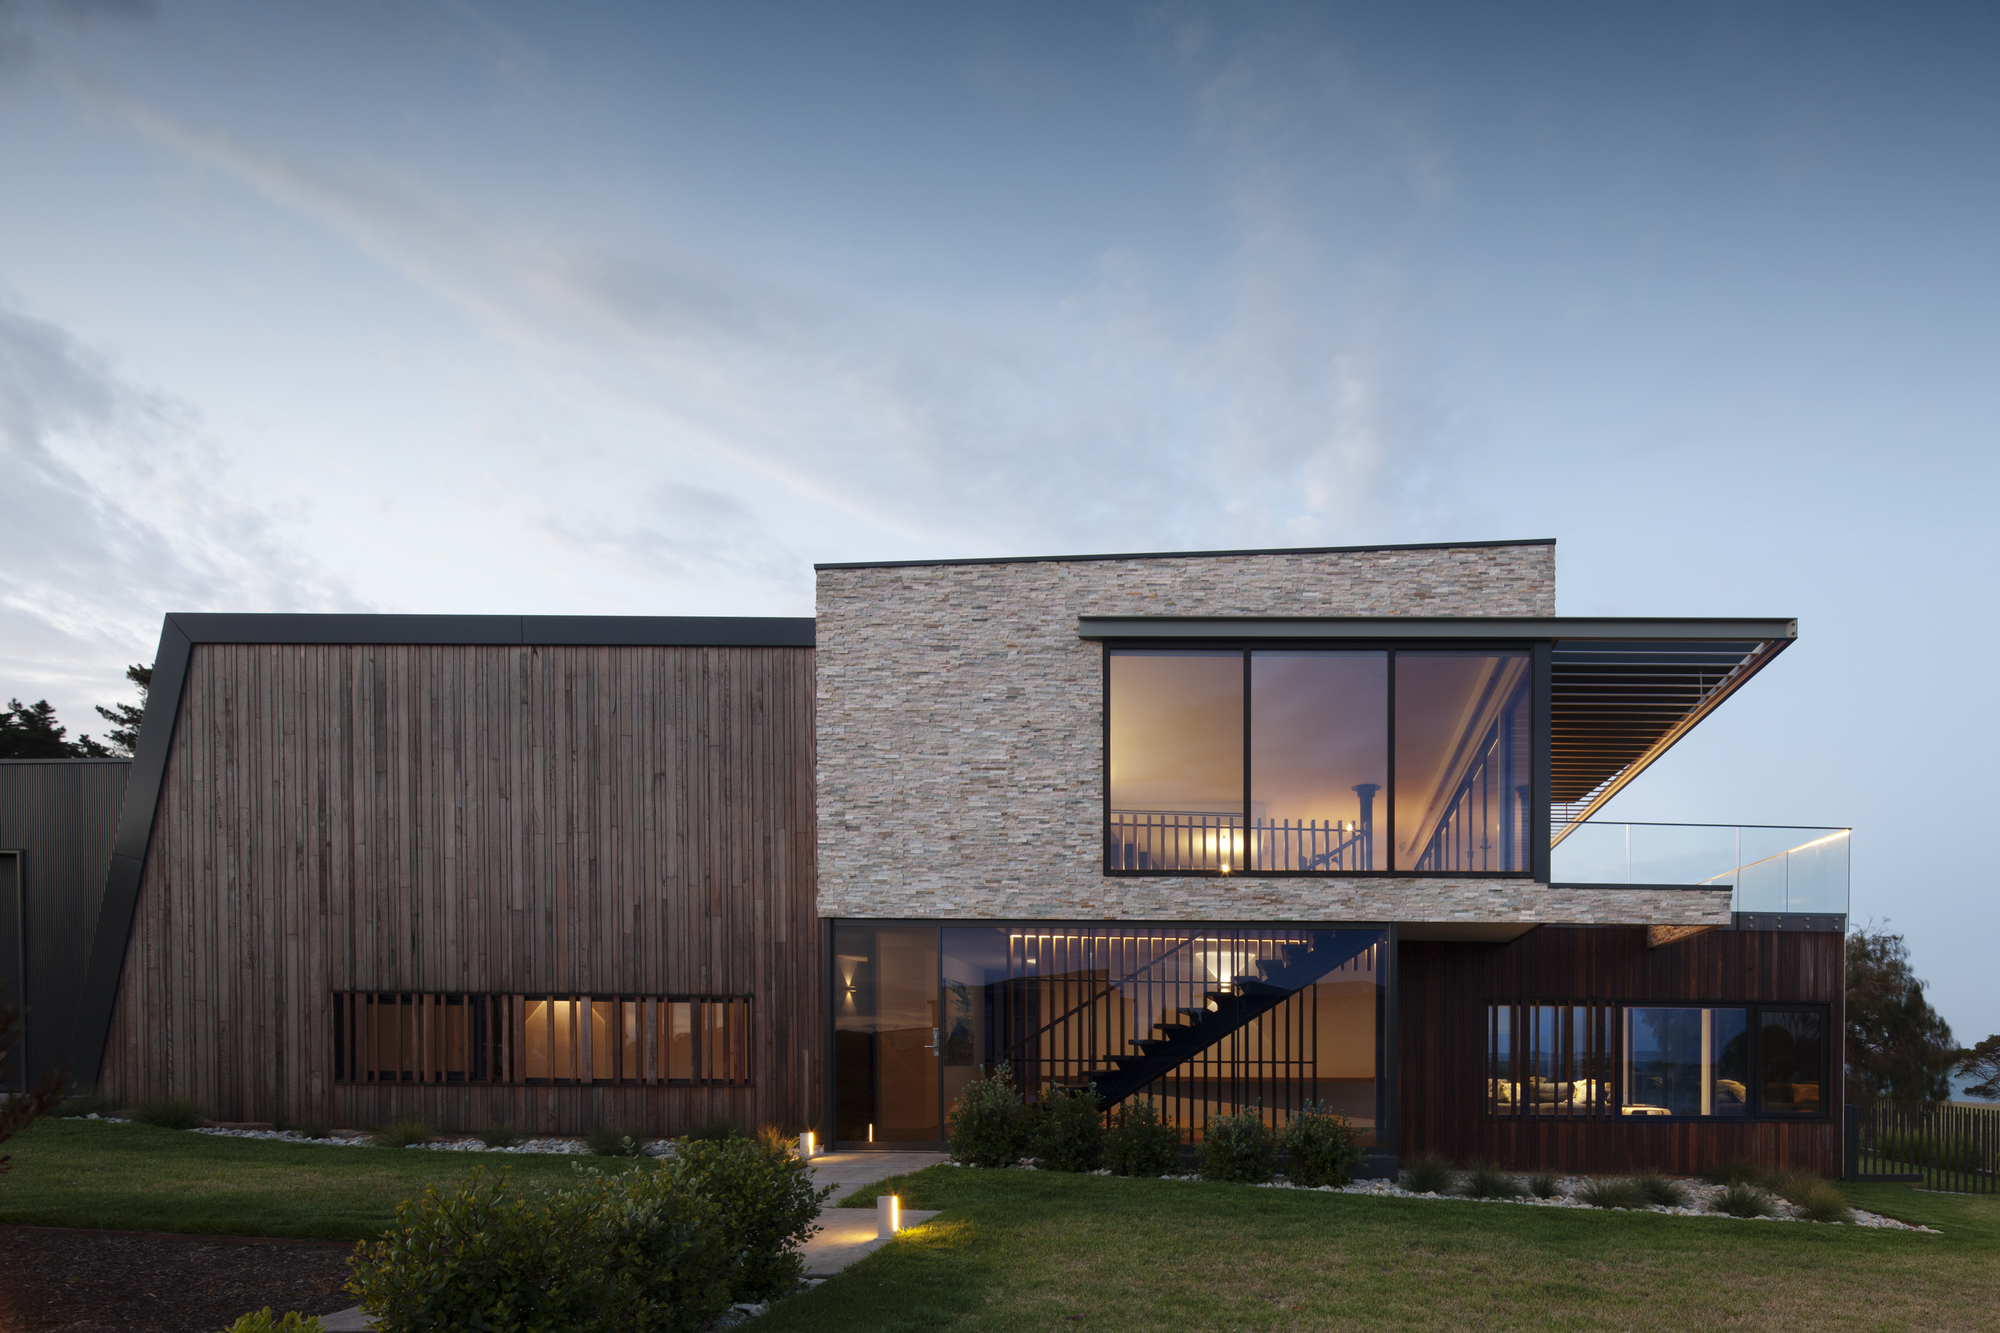 Rhyll house jarchitecture archdaily - Architectural design homes pictures ...